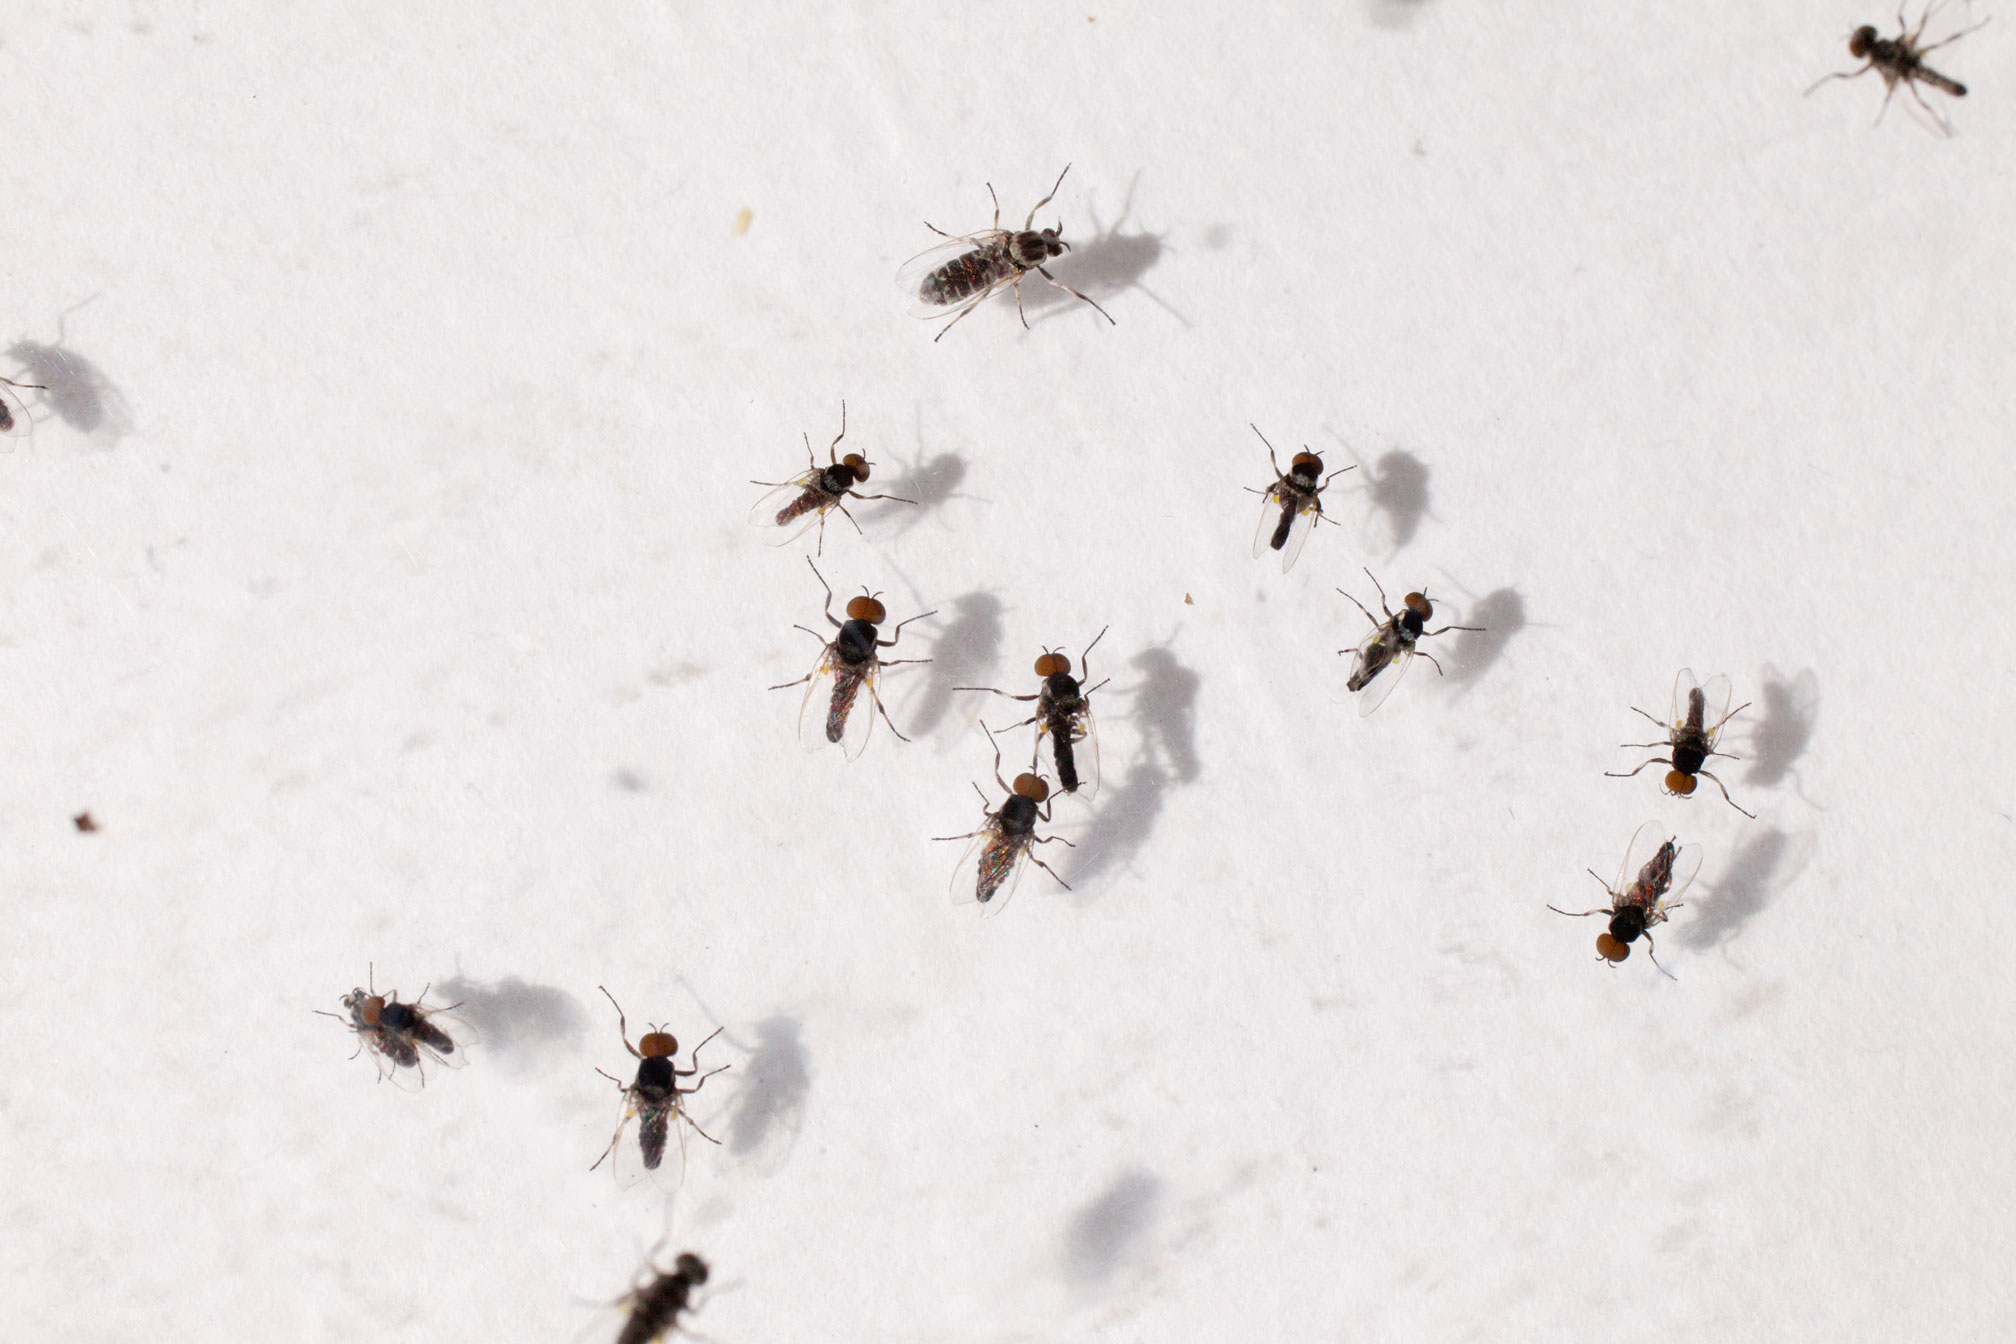 After months of above-normal rainfall, northeast Georgia is seeing the return of swarms of tiny, black flies.